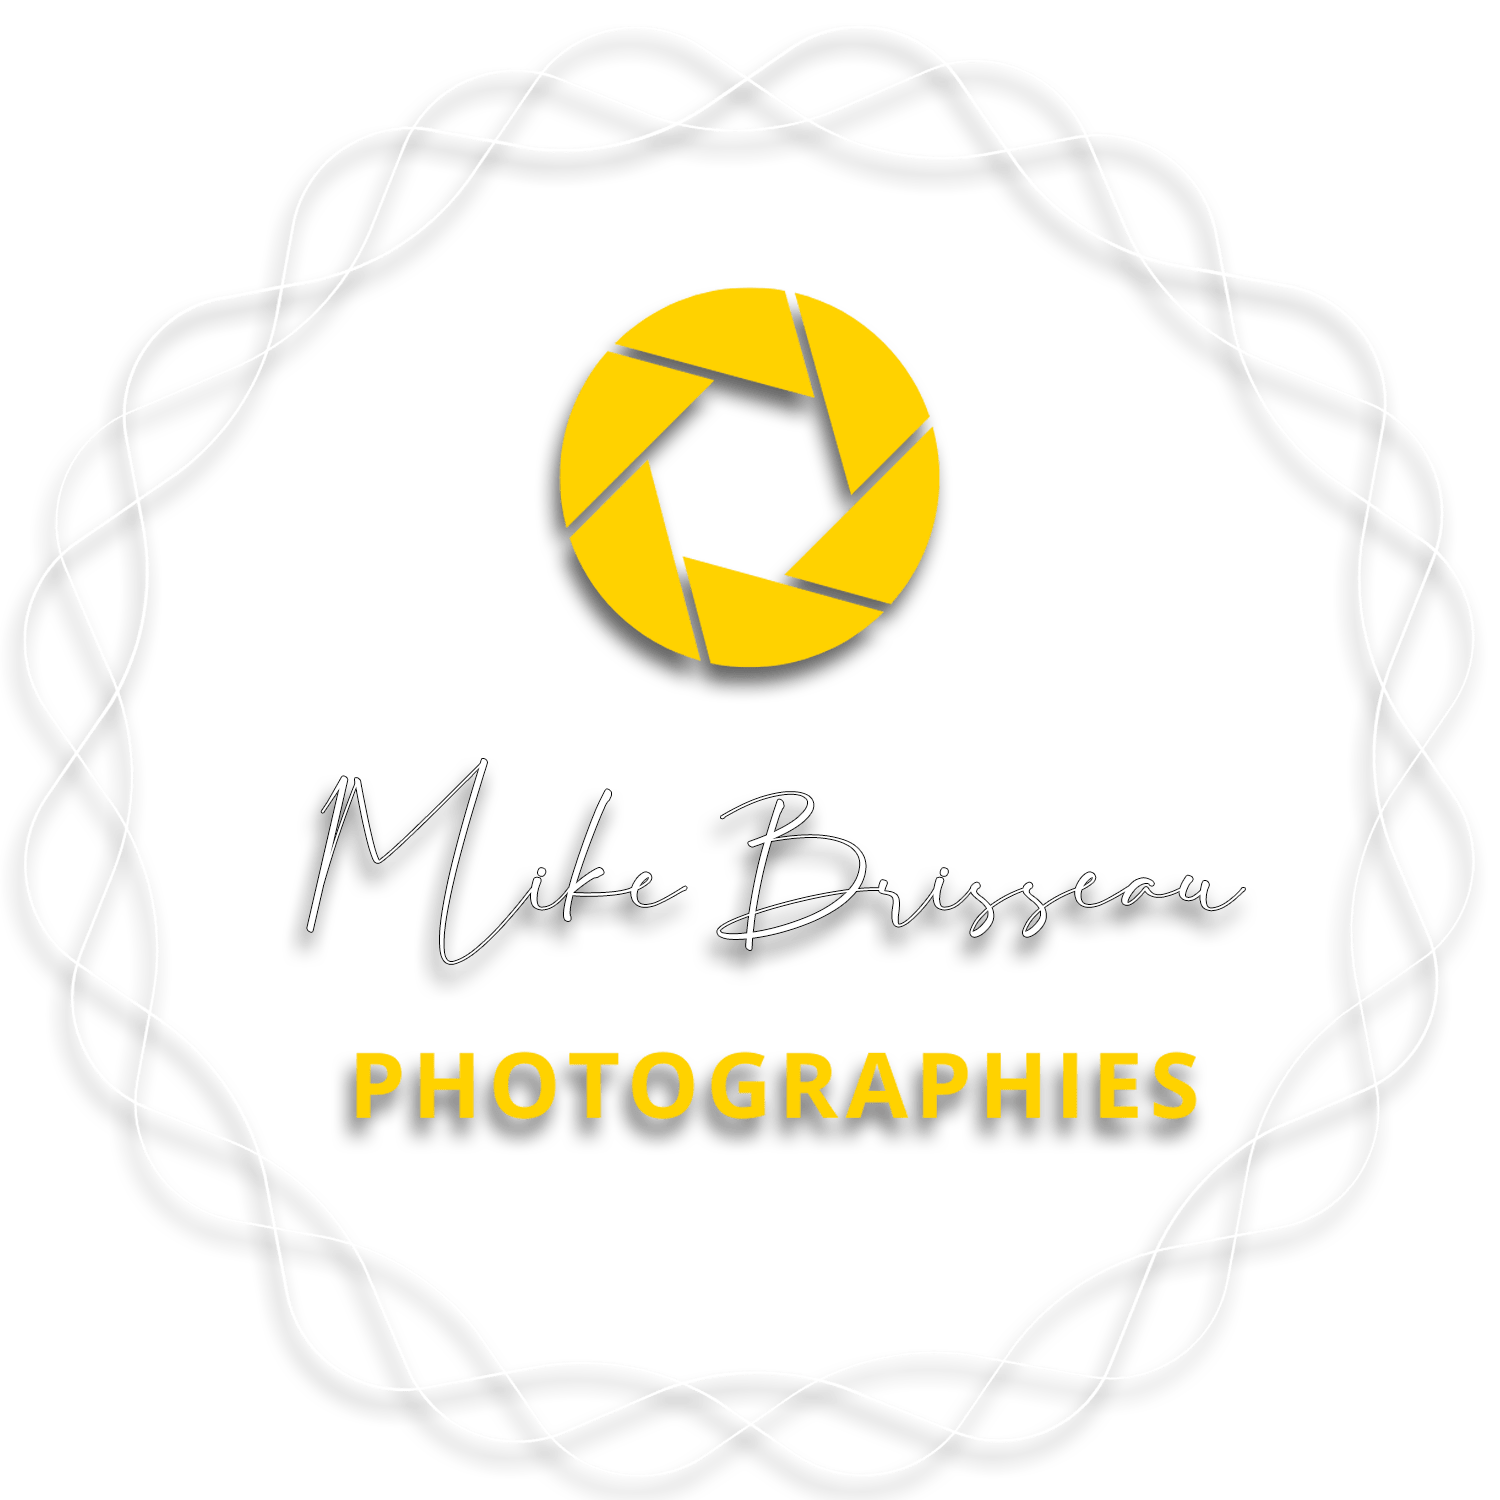 Mike photographies